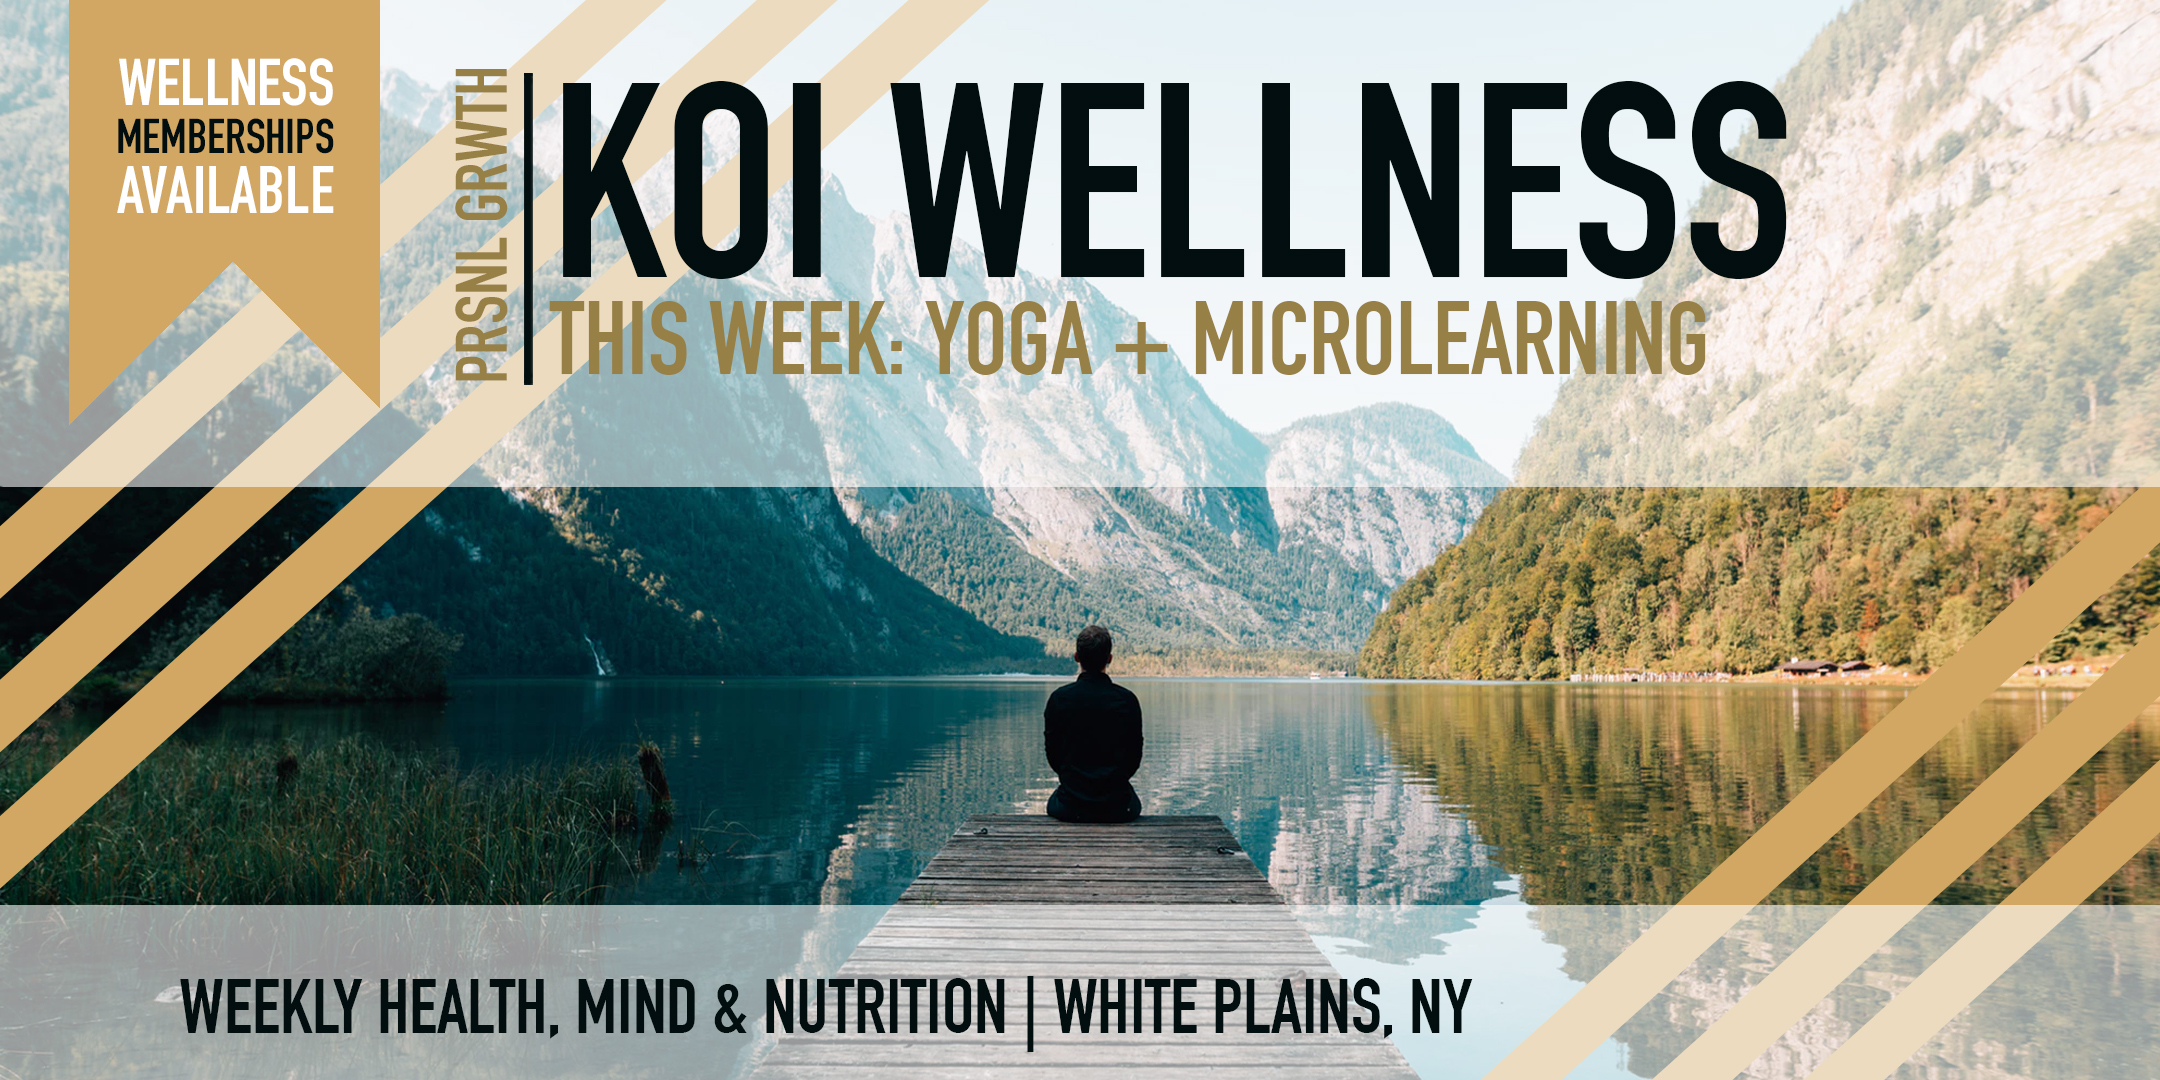 KOI wellness eventbrite2.jpg